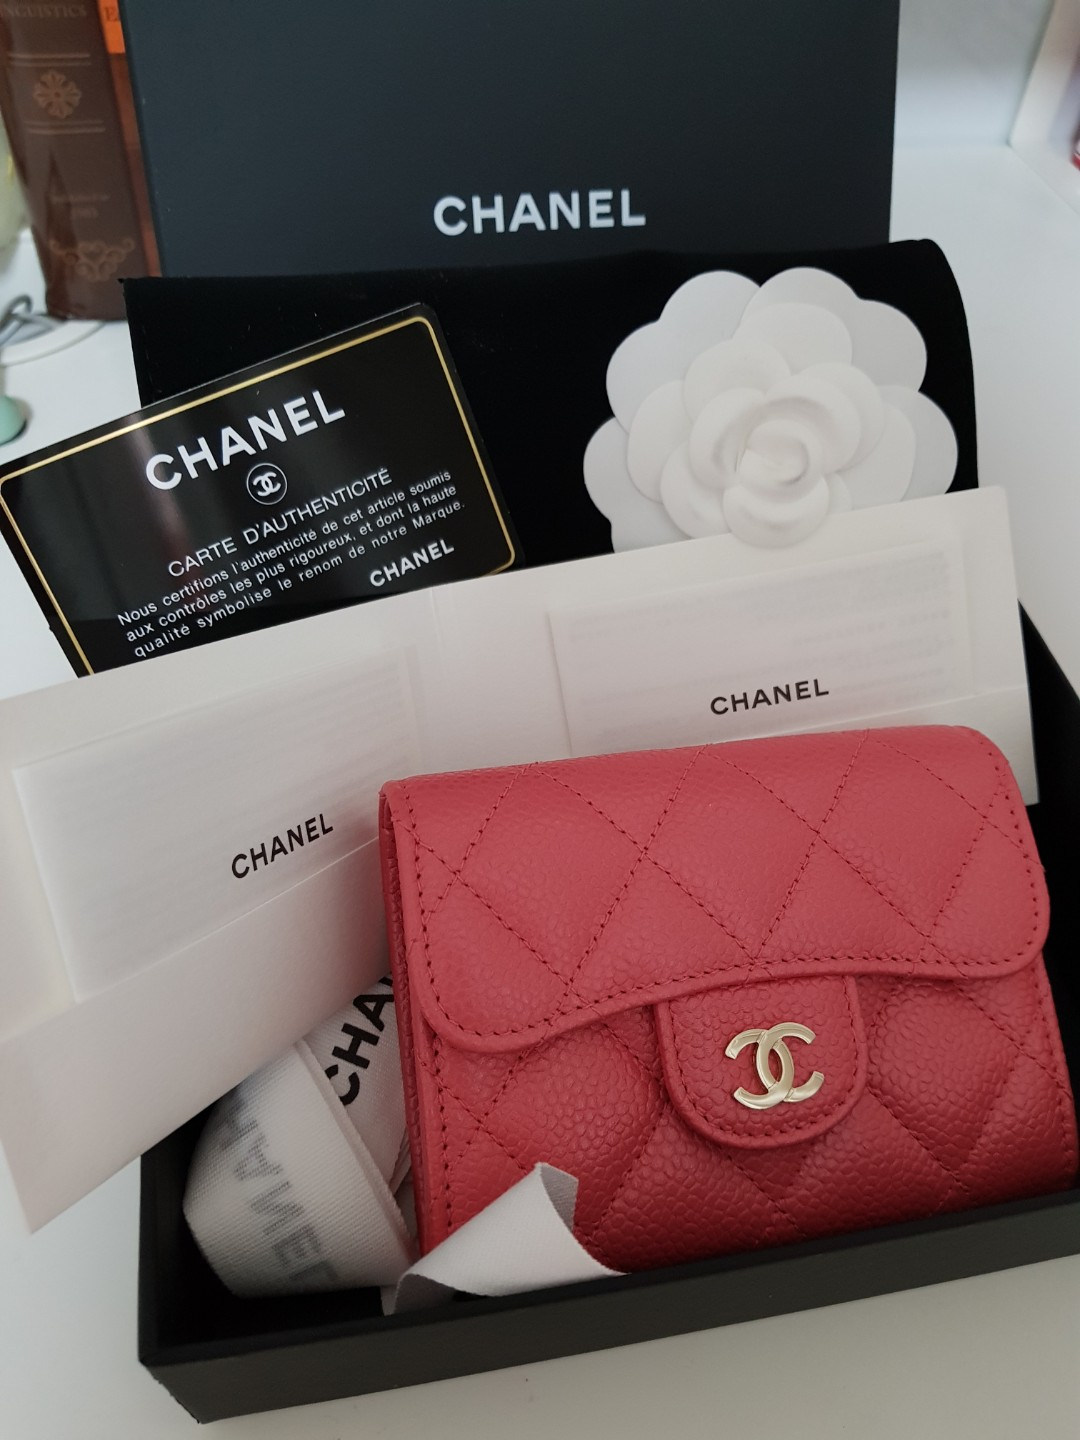 19caf490762e Chanel XL Cardholder / Coin Purse / Wallet in Rose Pink, Luxury, Bags &  Wallets, Wallets on Carousell